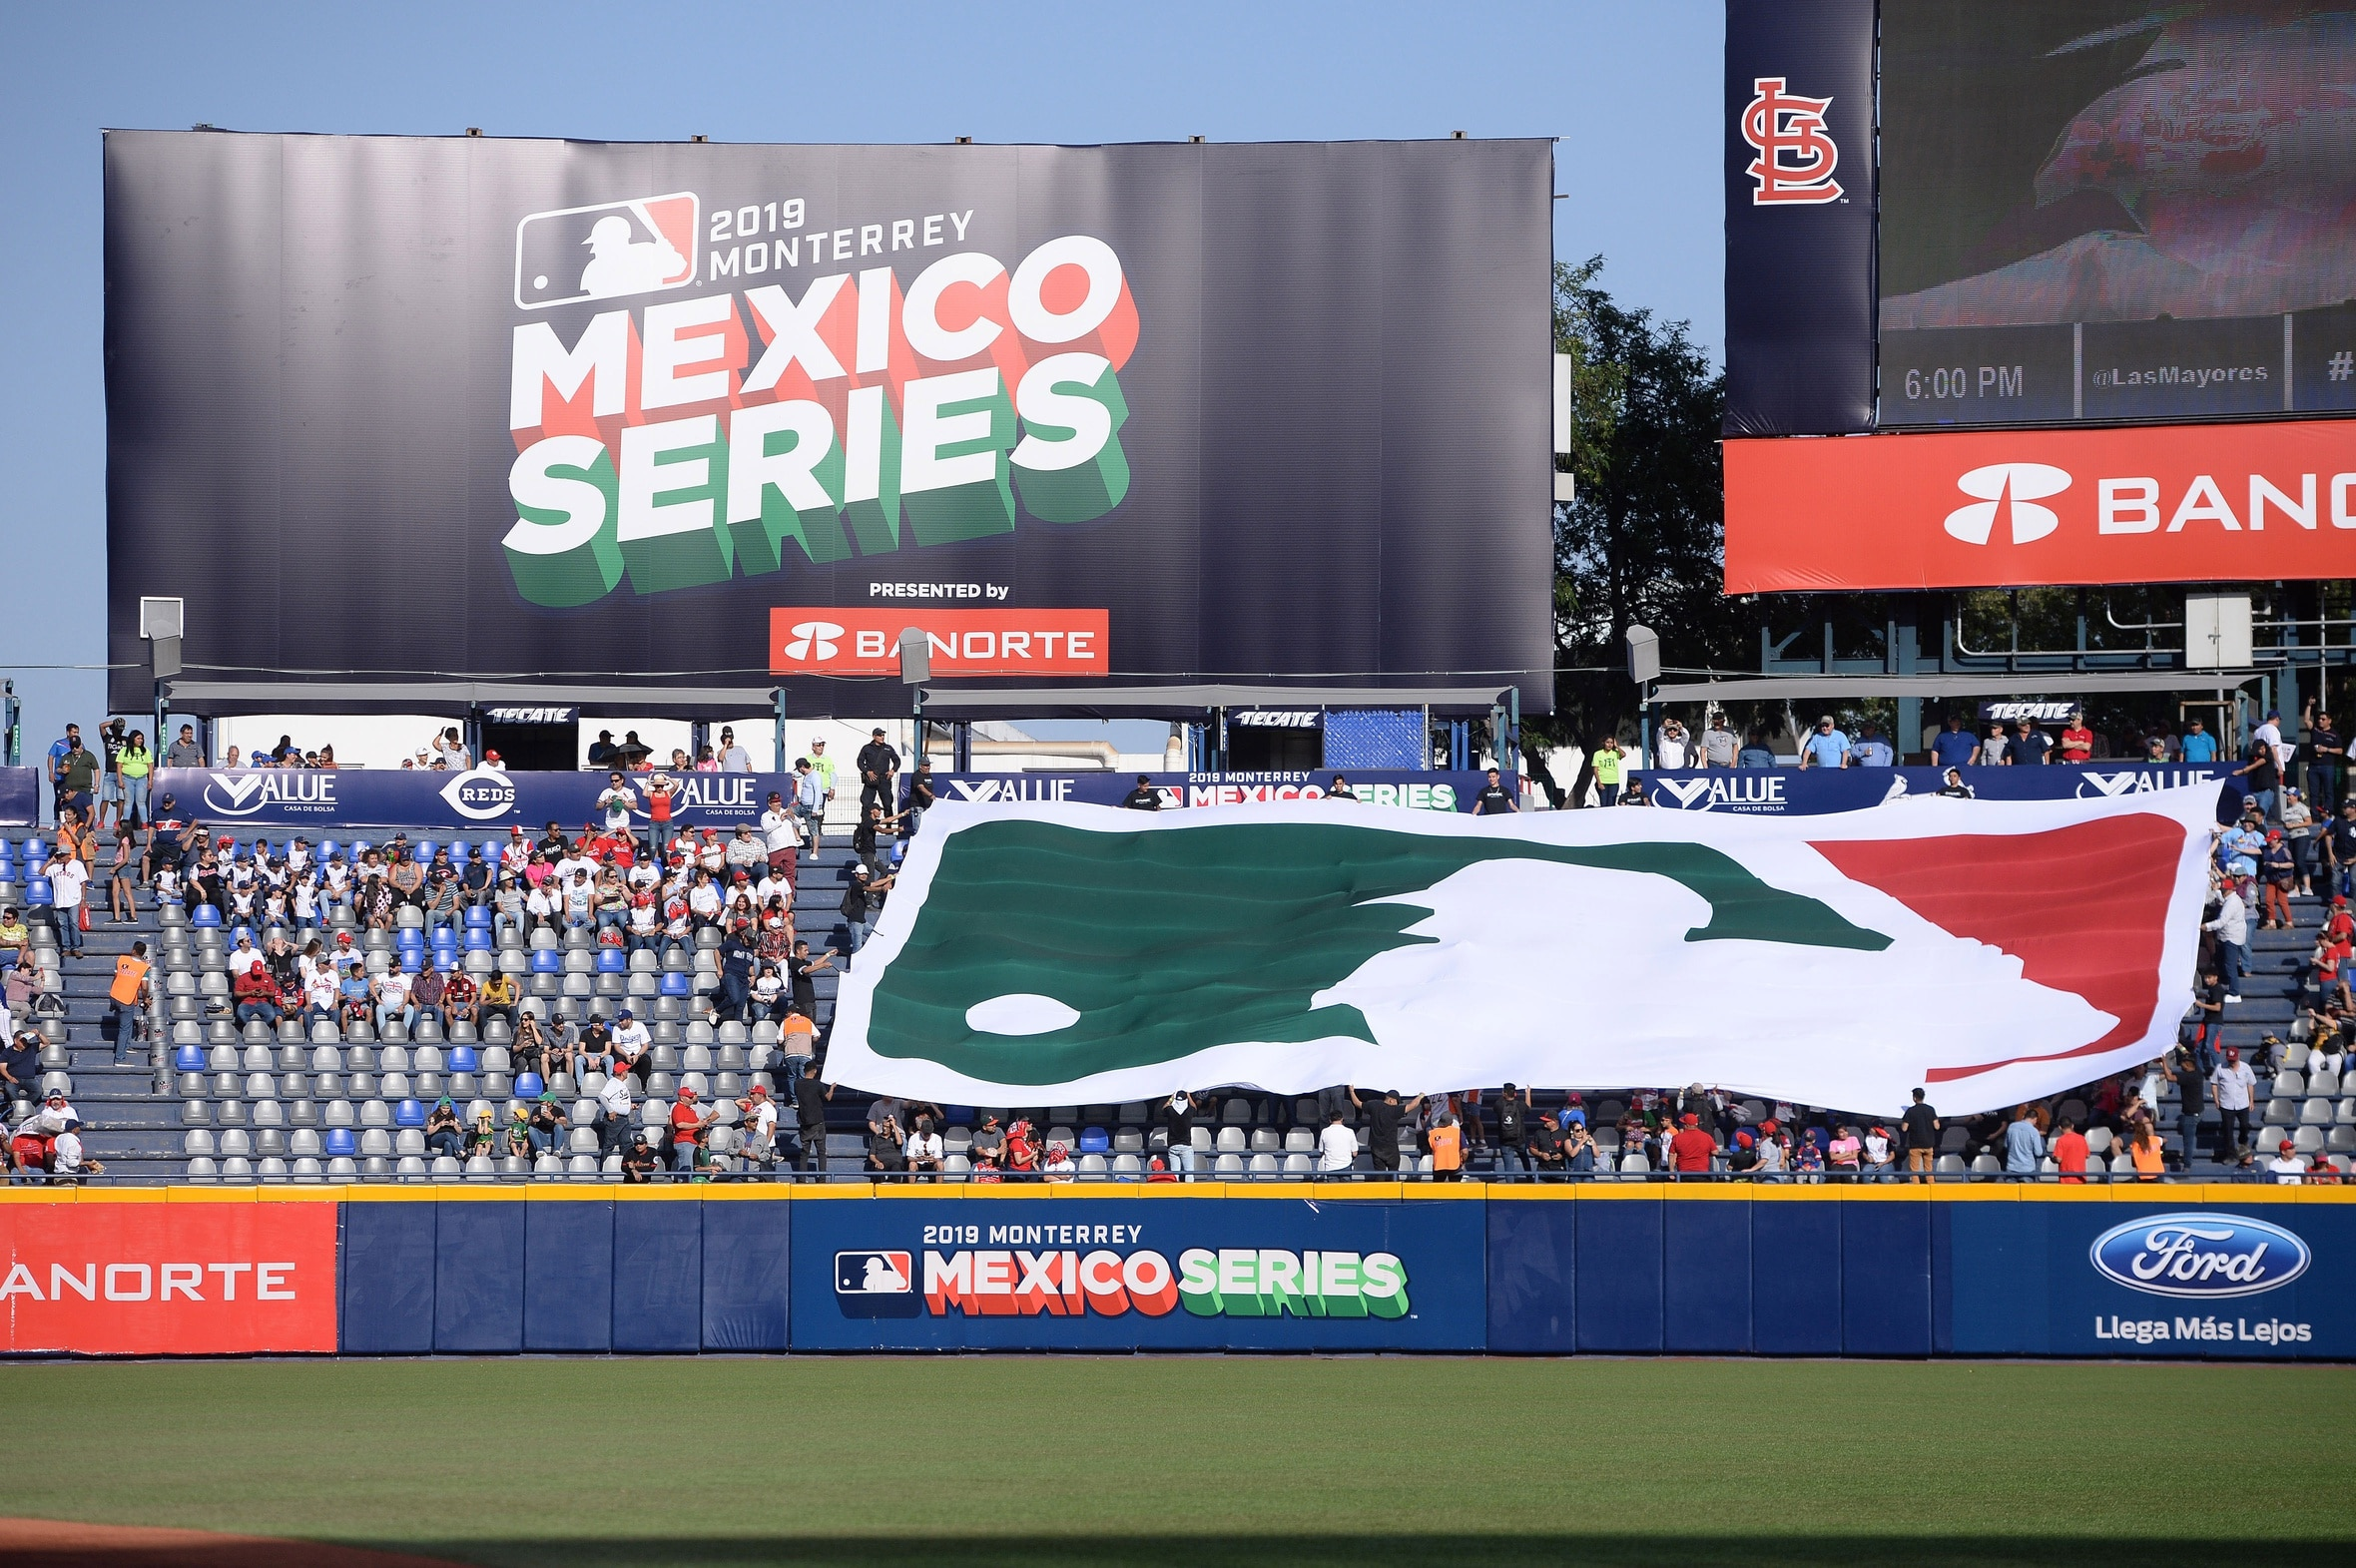 Padres to play 2 games against Diamondbacks in Mexico City